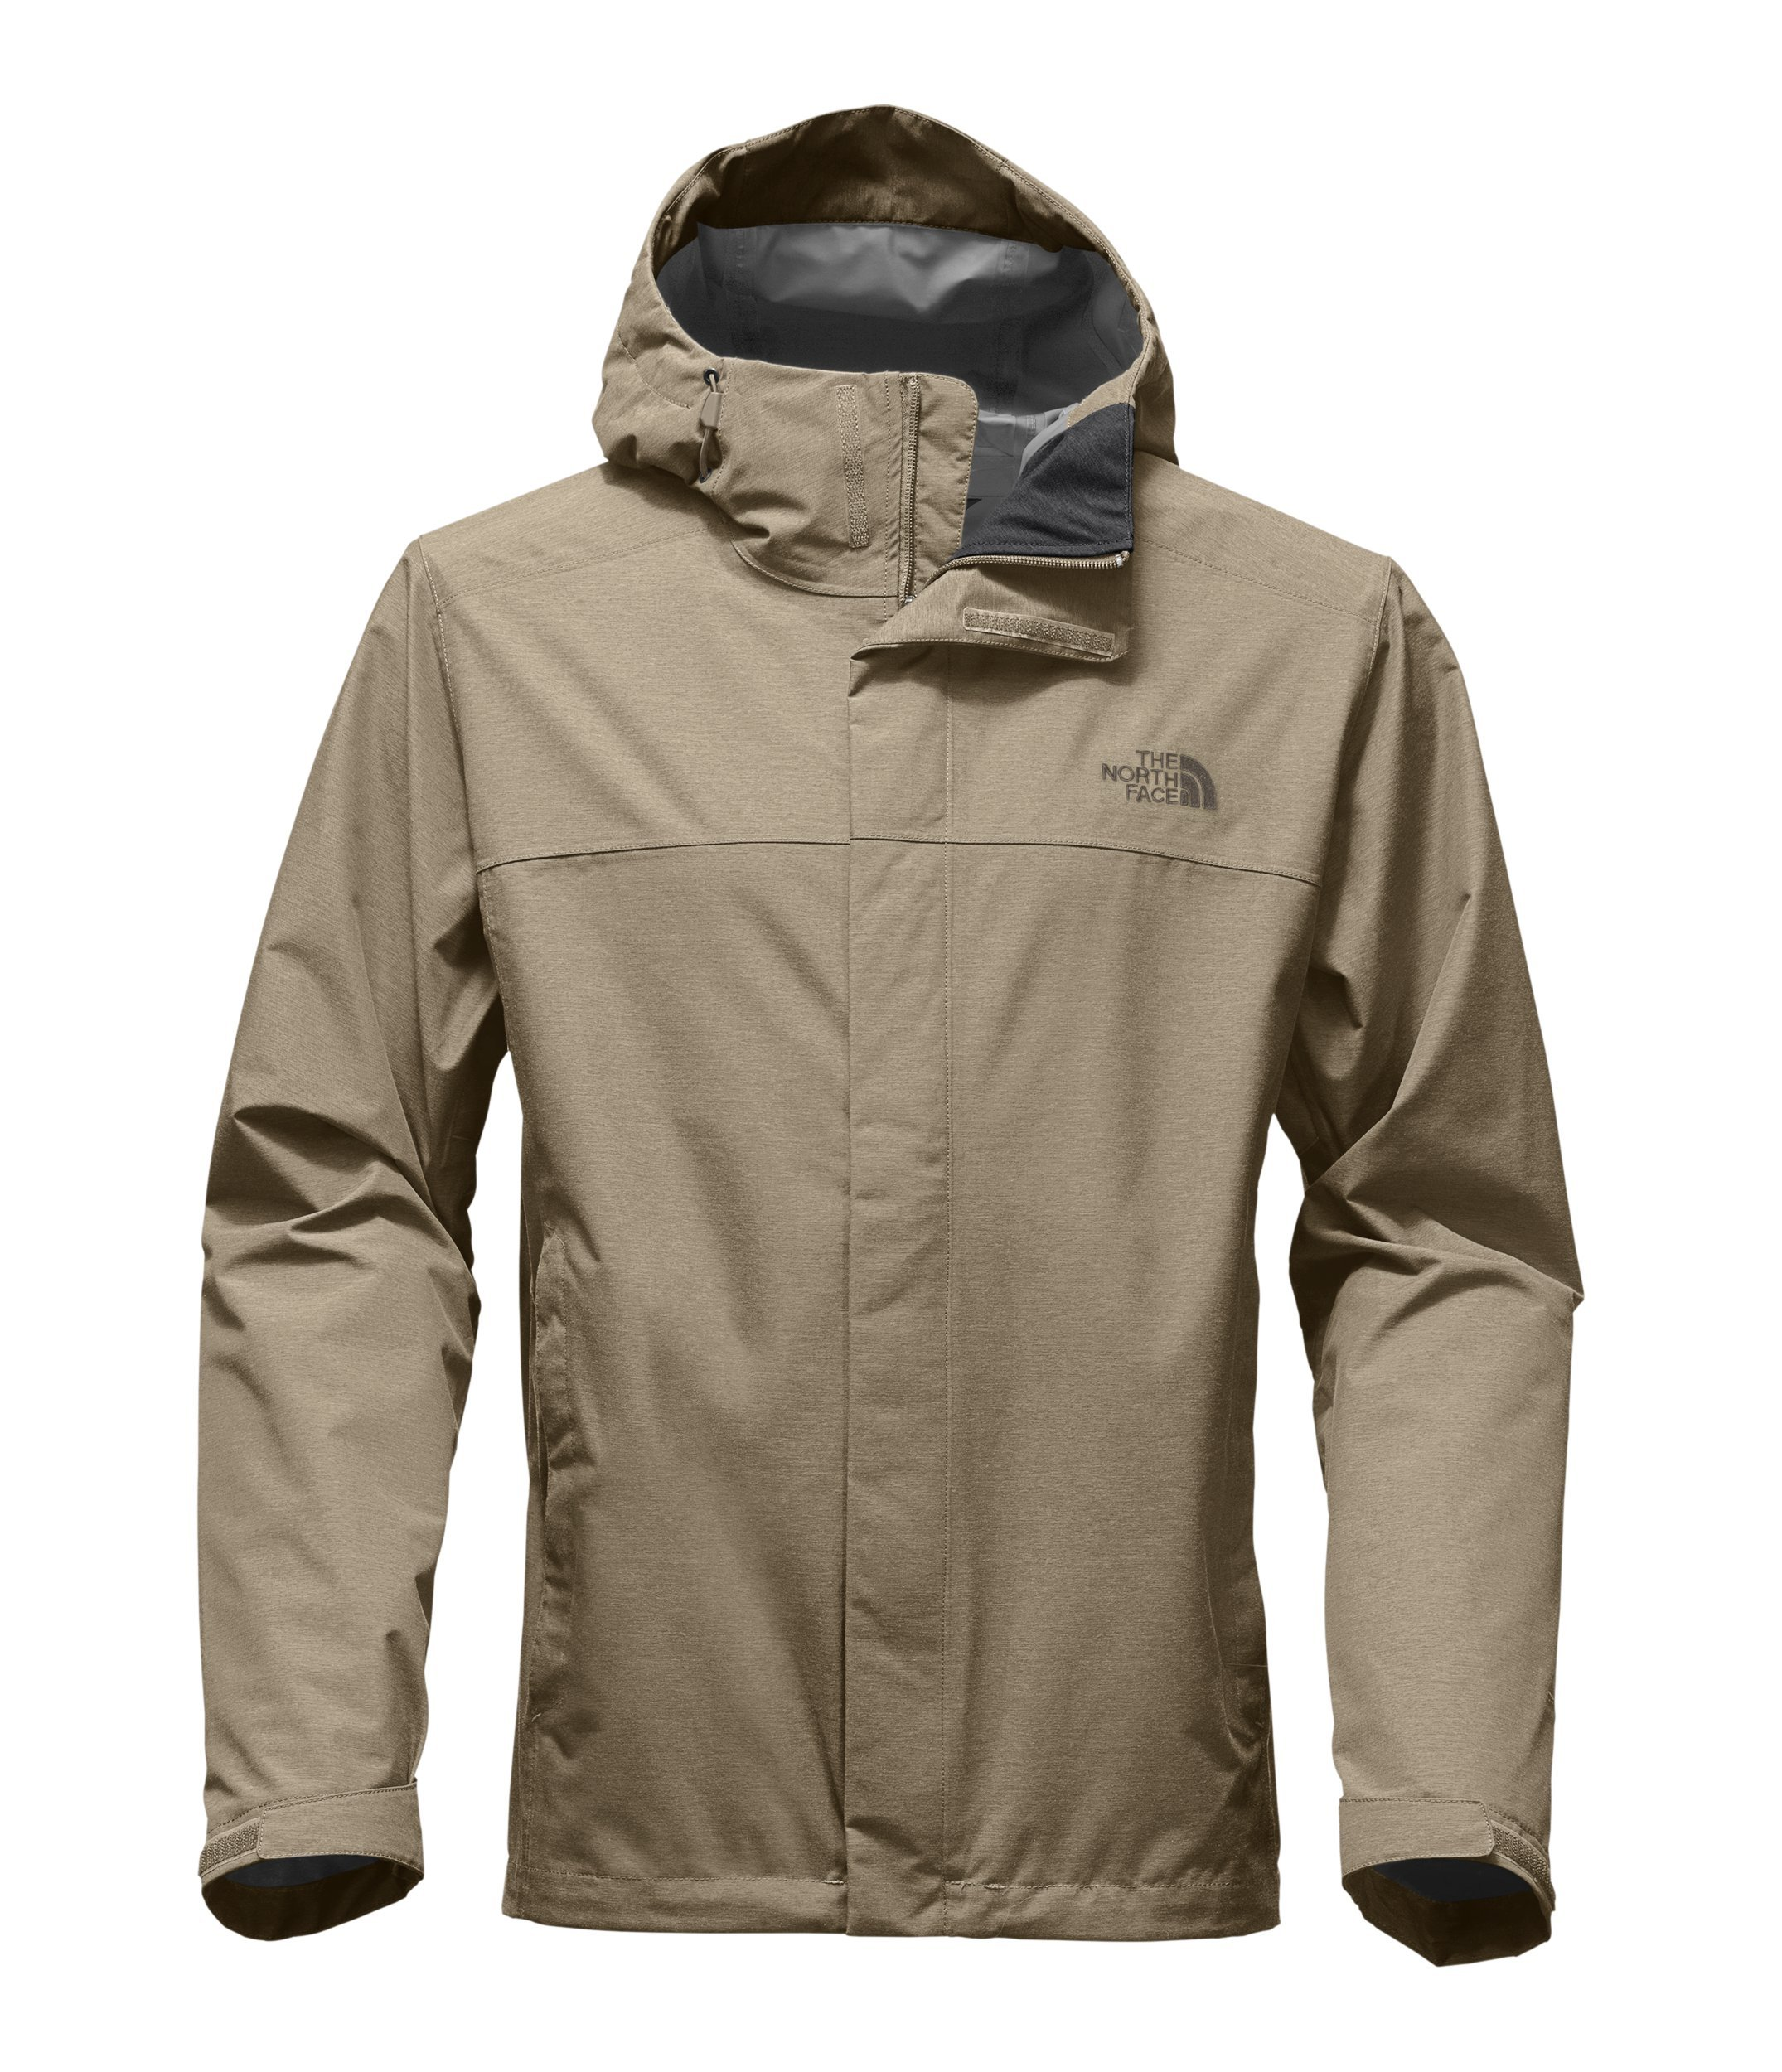 The North Face Men's Venture 2 Jacket - Dune Beige Heather - XL by The North Face